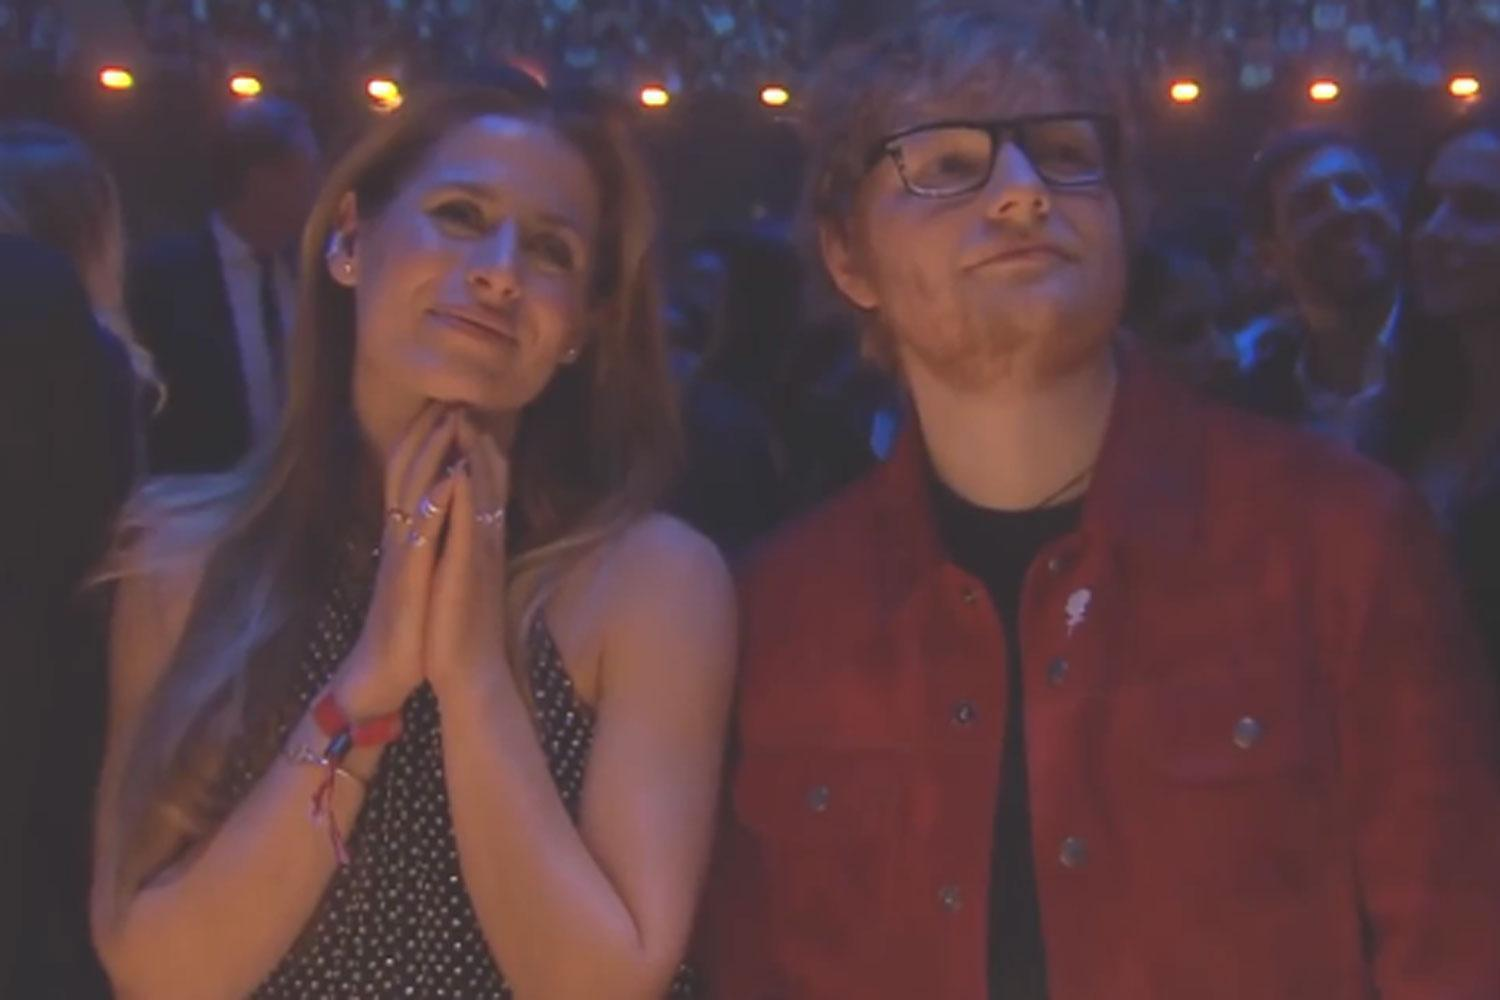 'I'm Wearing An Engagement Ring' Ed Sheeran Sets Cherry